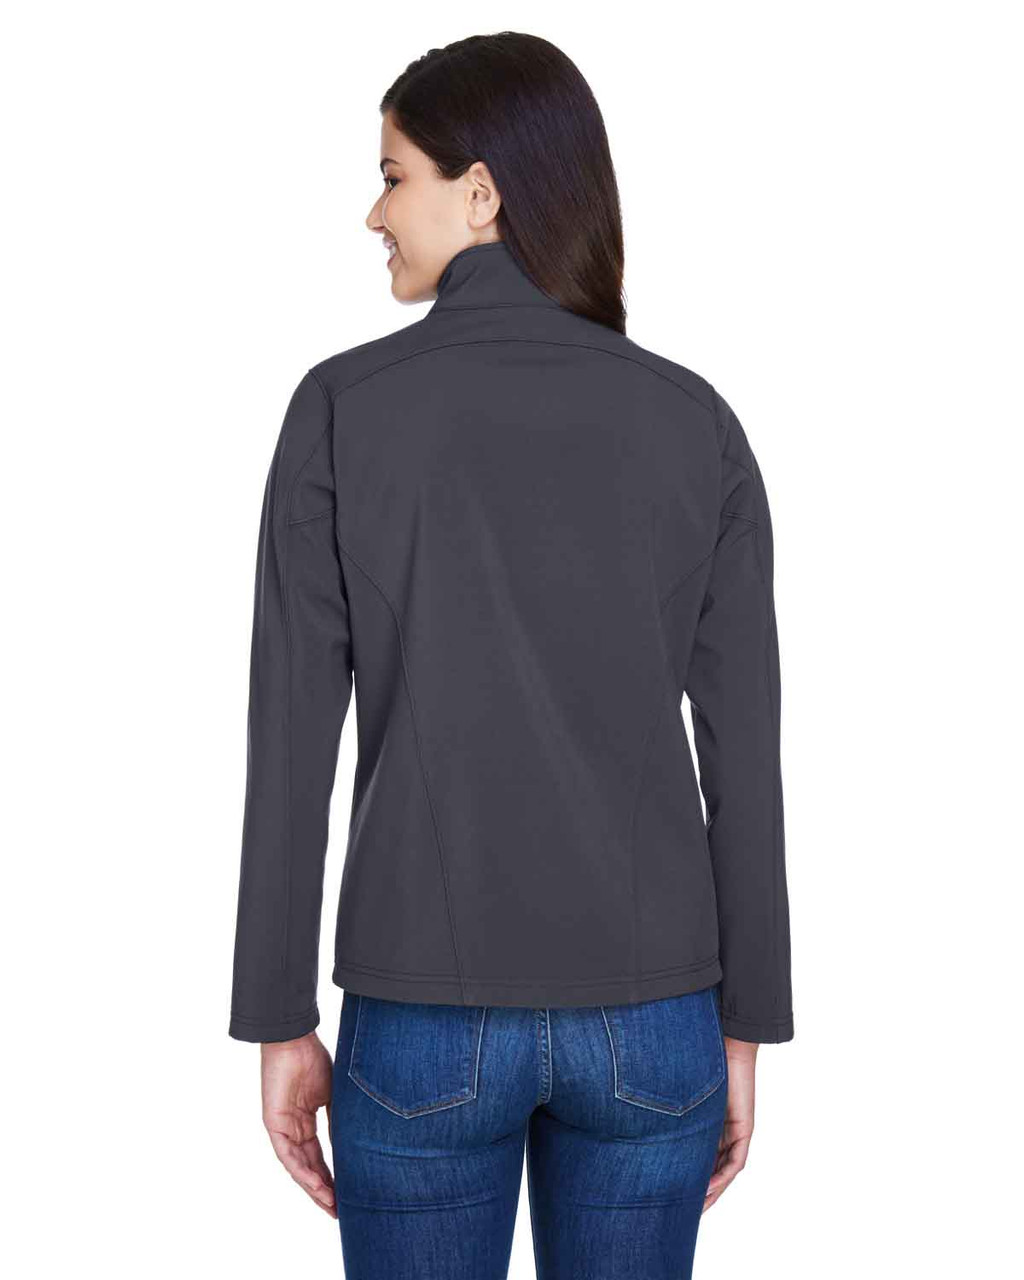 Carbon - Back, 78184 Core 365 Ladies' Fleece Soft Shell Jacket | Blankclothing.ca